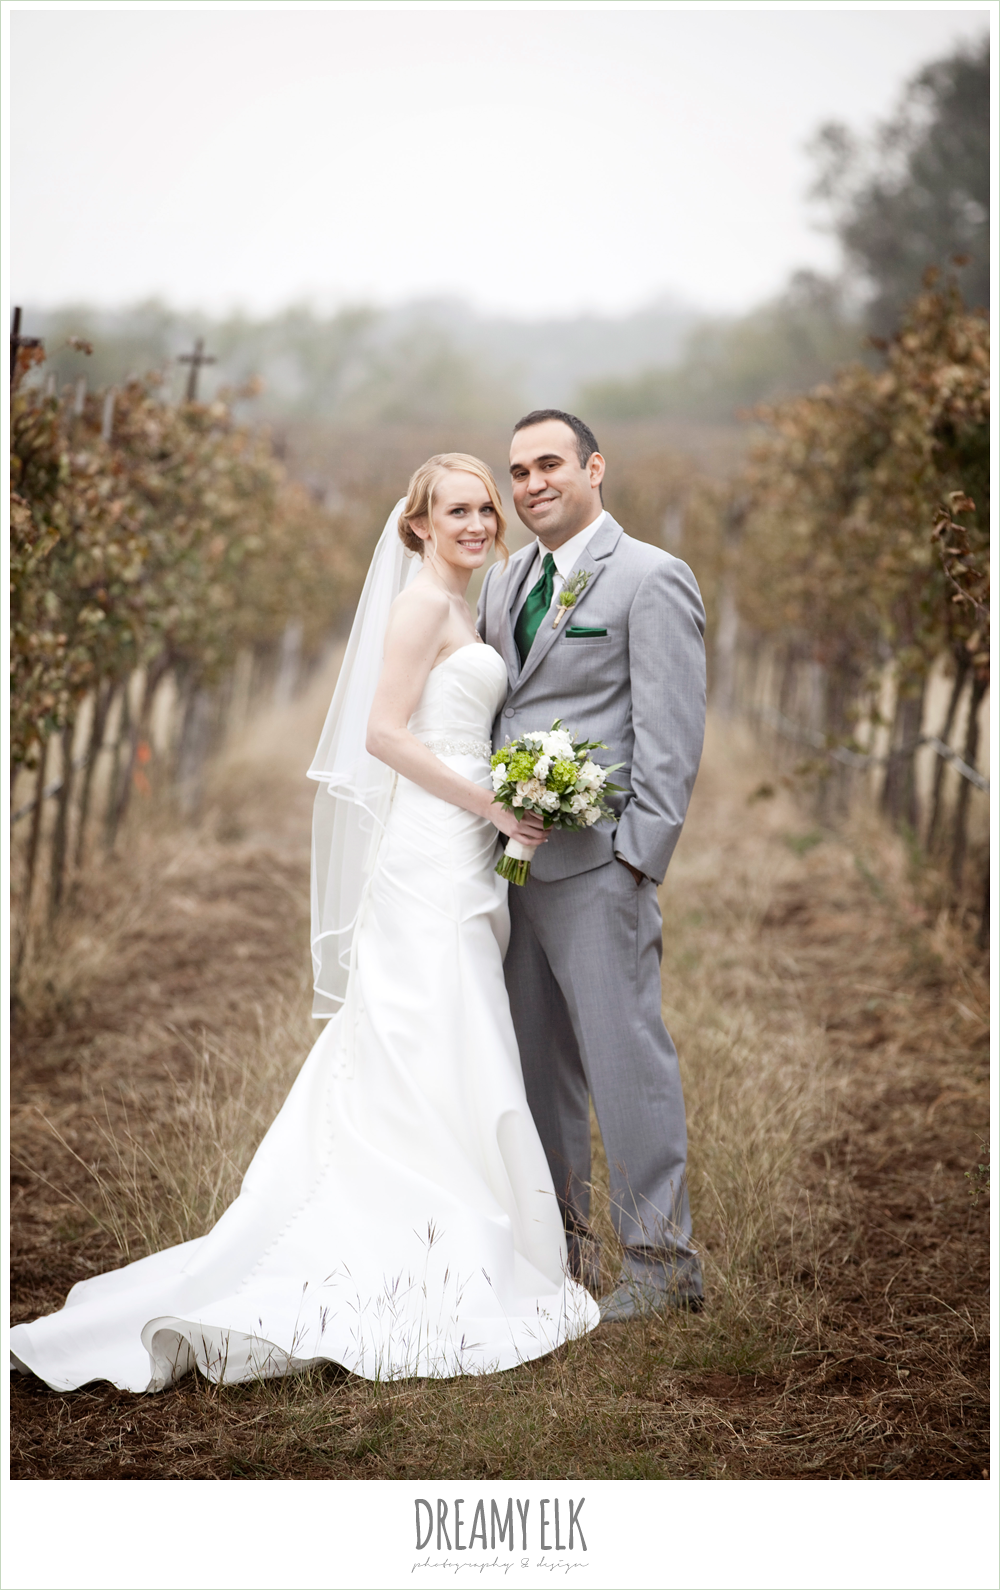 bride and groom, winter vineyard wedding, dreamy elk photography and design